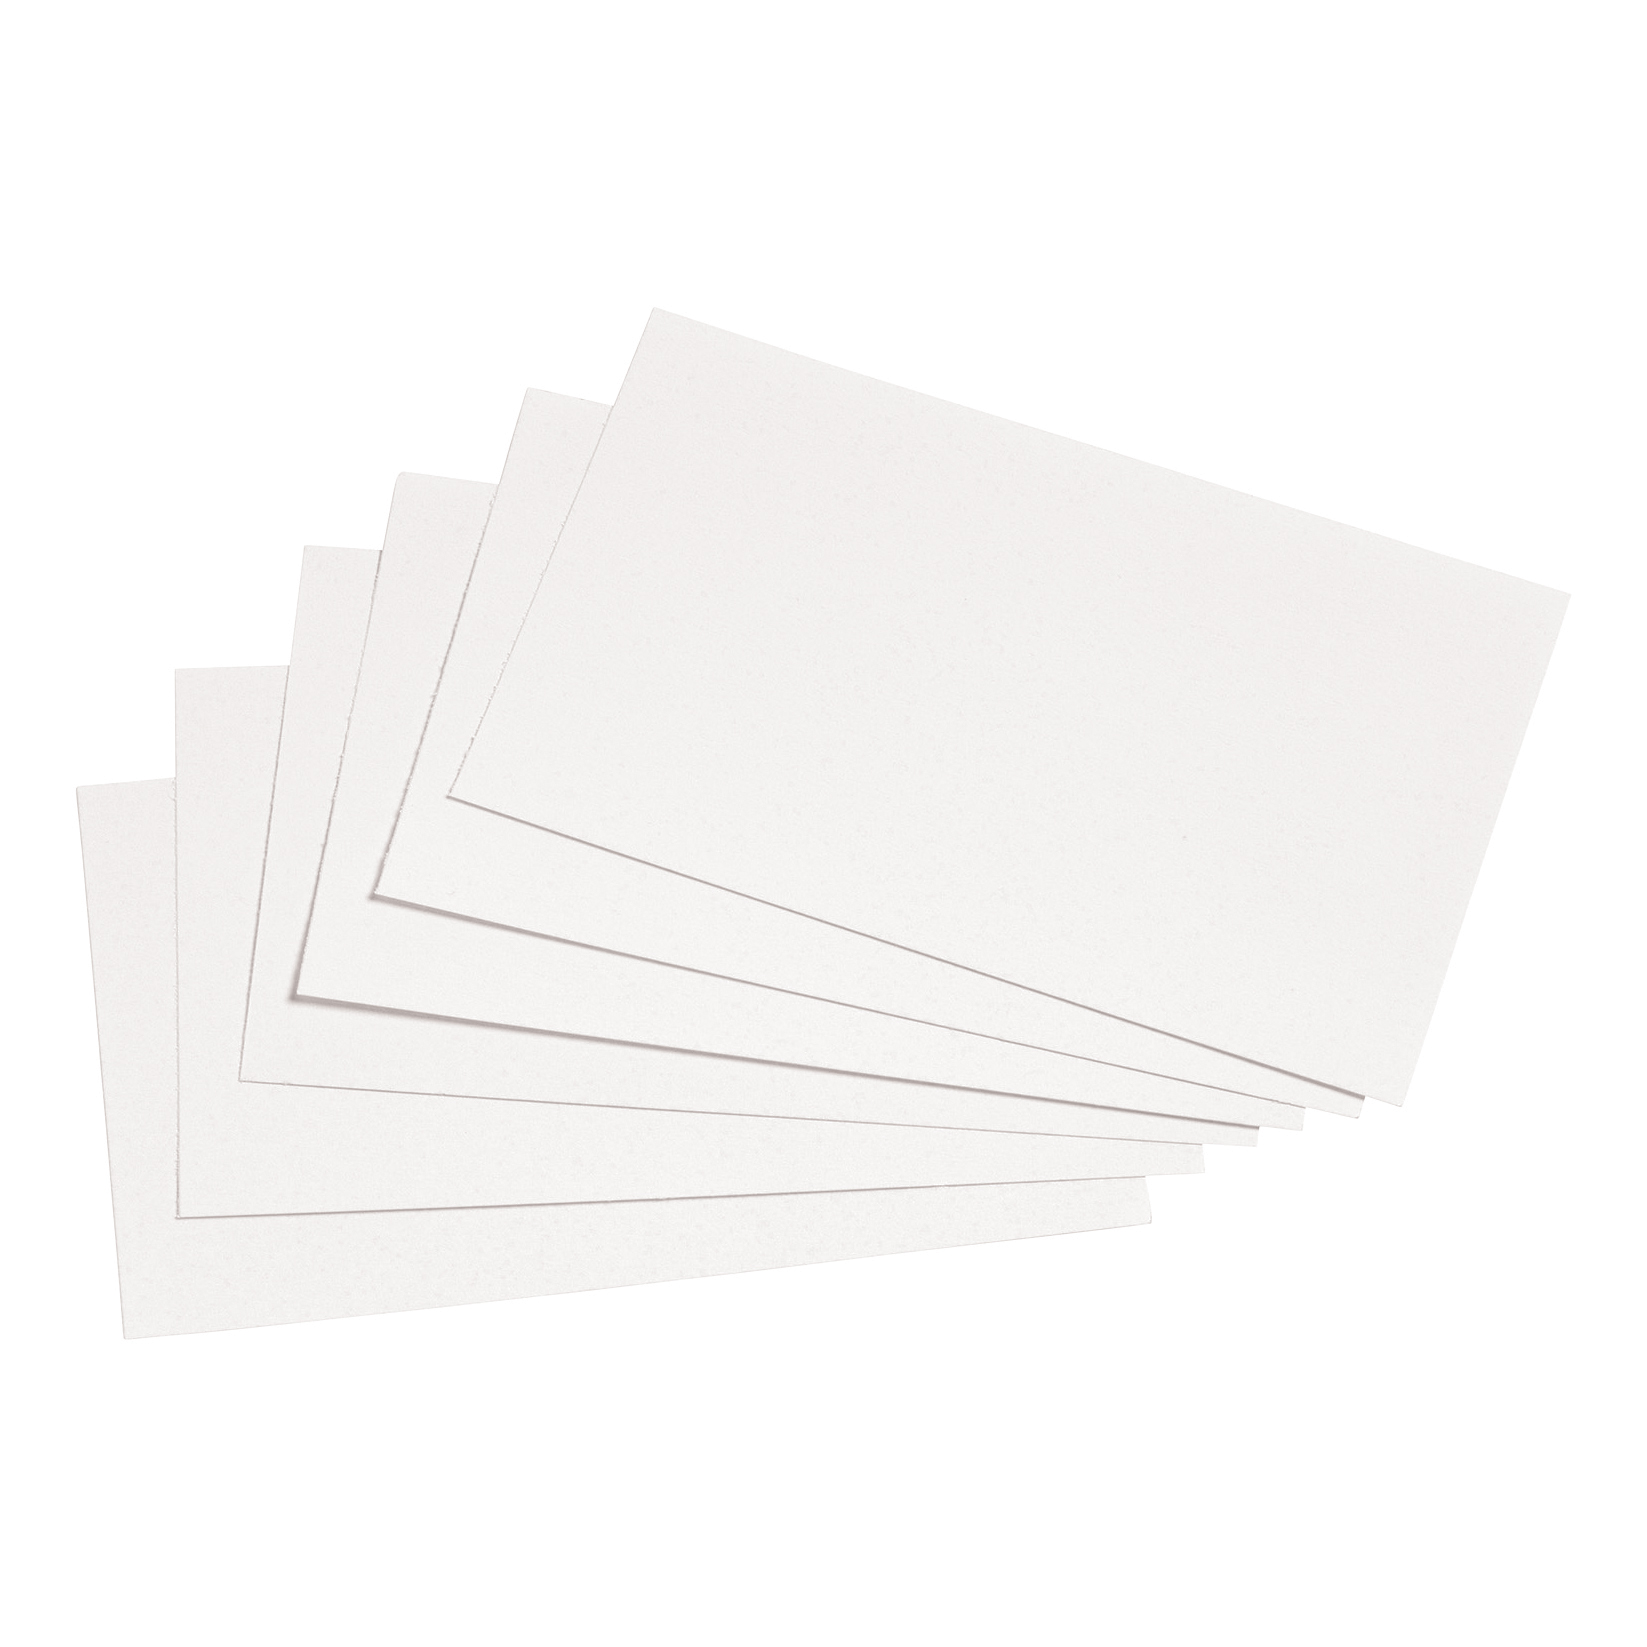 Record Cards 5 Star Office Record Cards Blank 5x3in 127x76mm White Pack 100